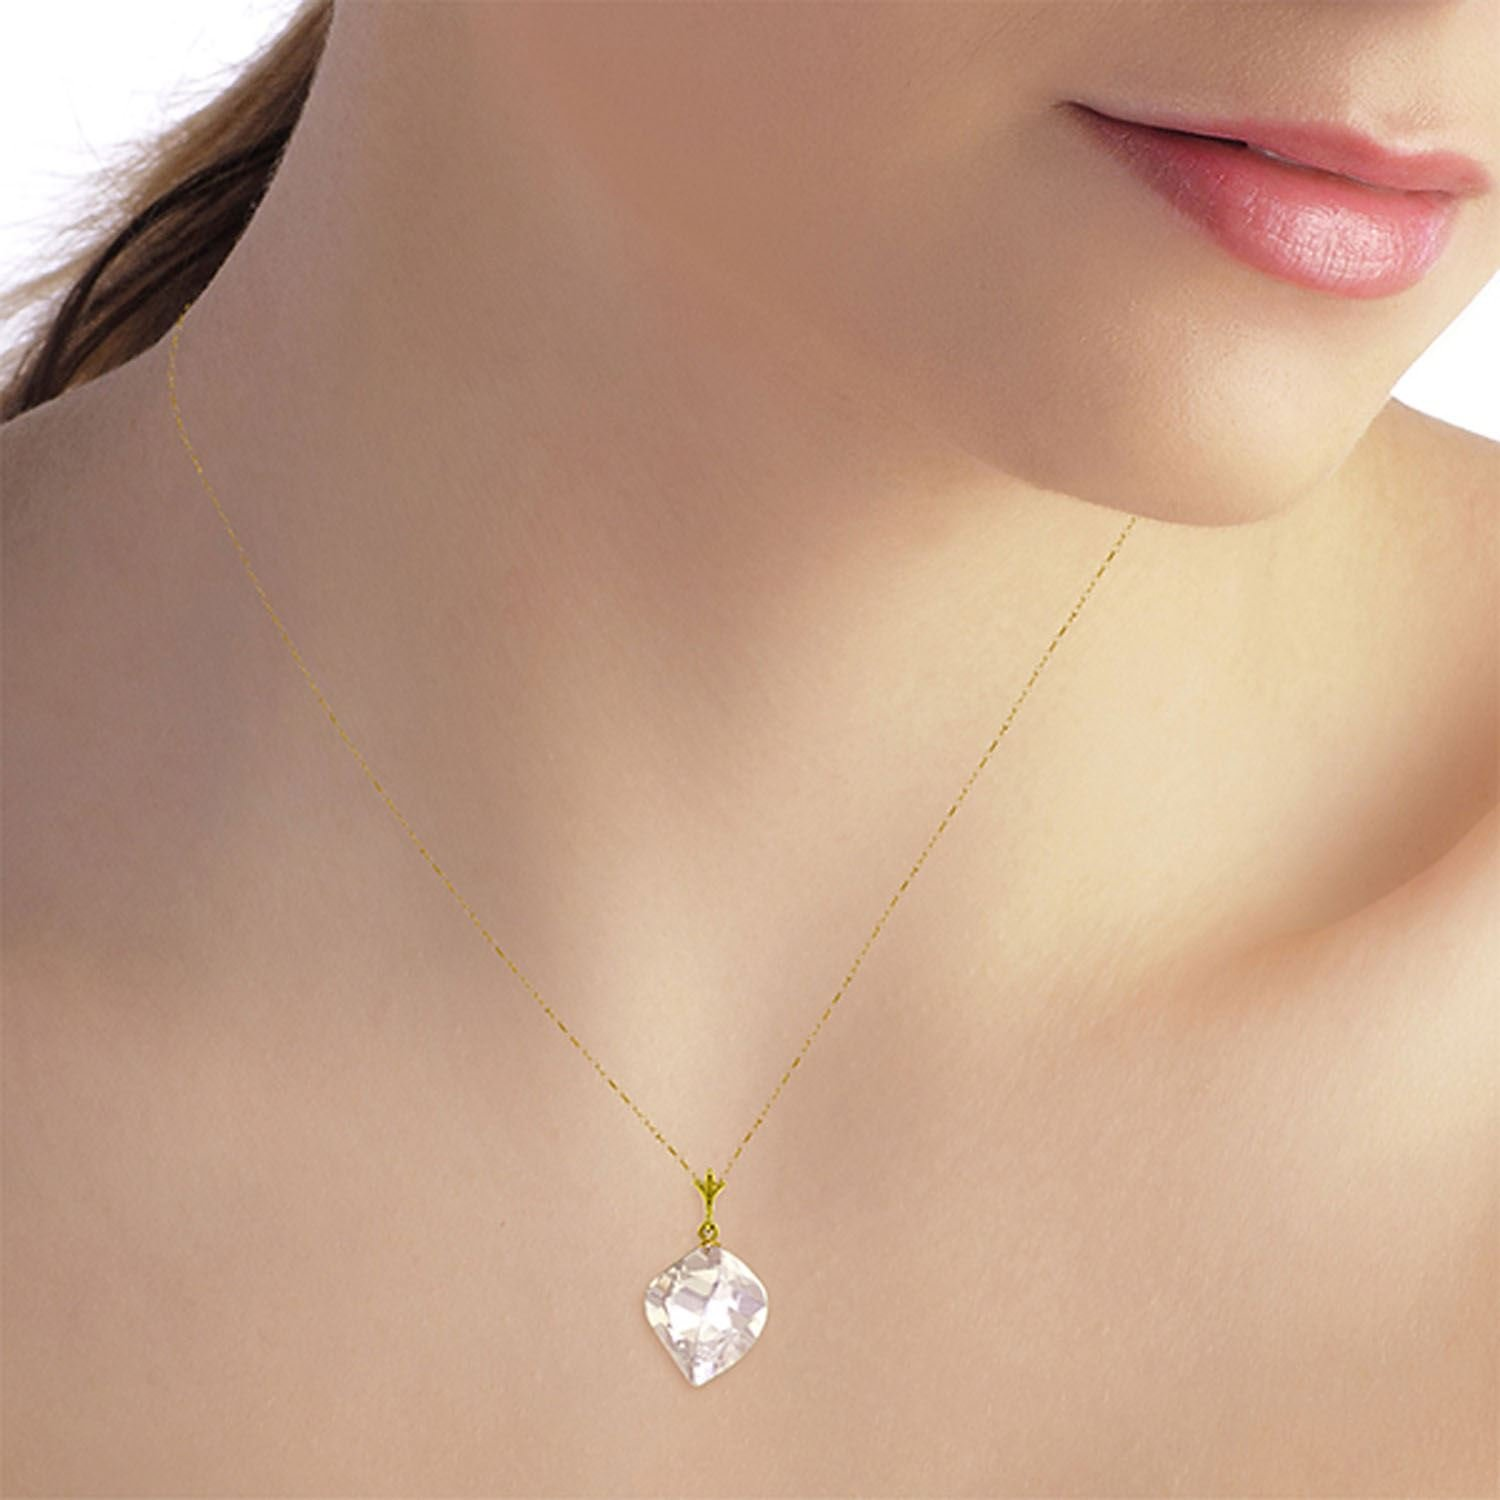 ALARRI 12.8 CTW 14K Solid Gold Necklace Twisted Briolette White Topaz with 24 Inch Chain Length